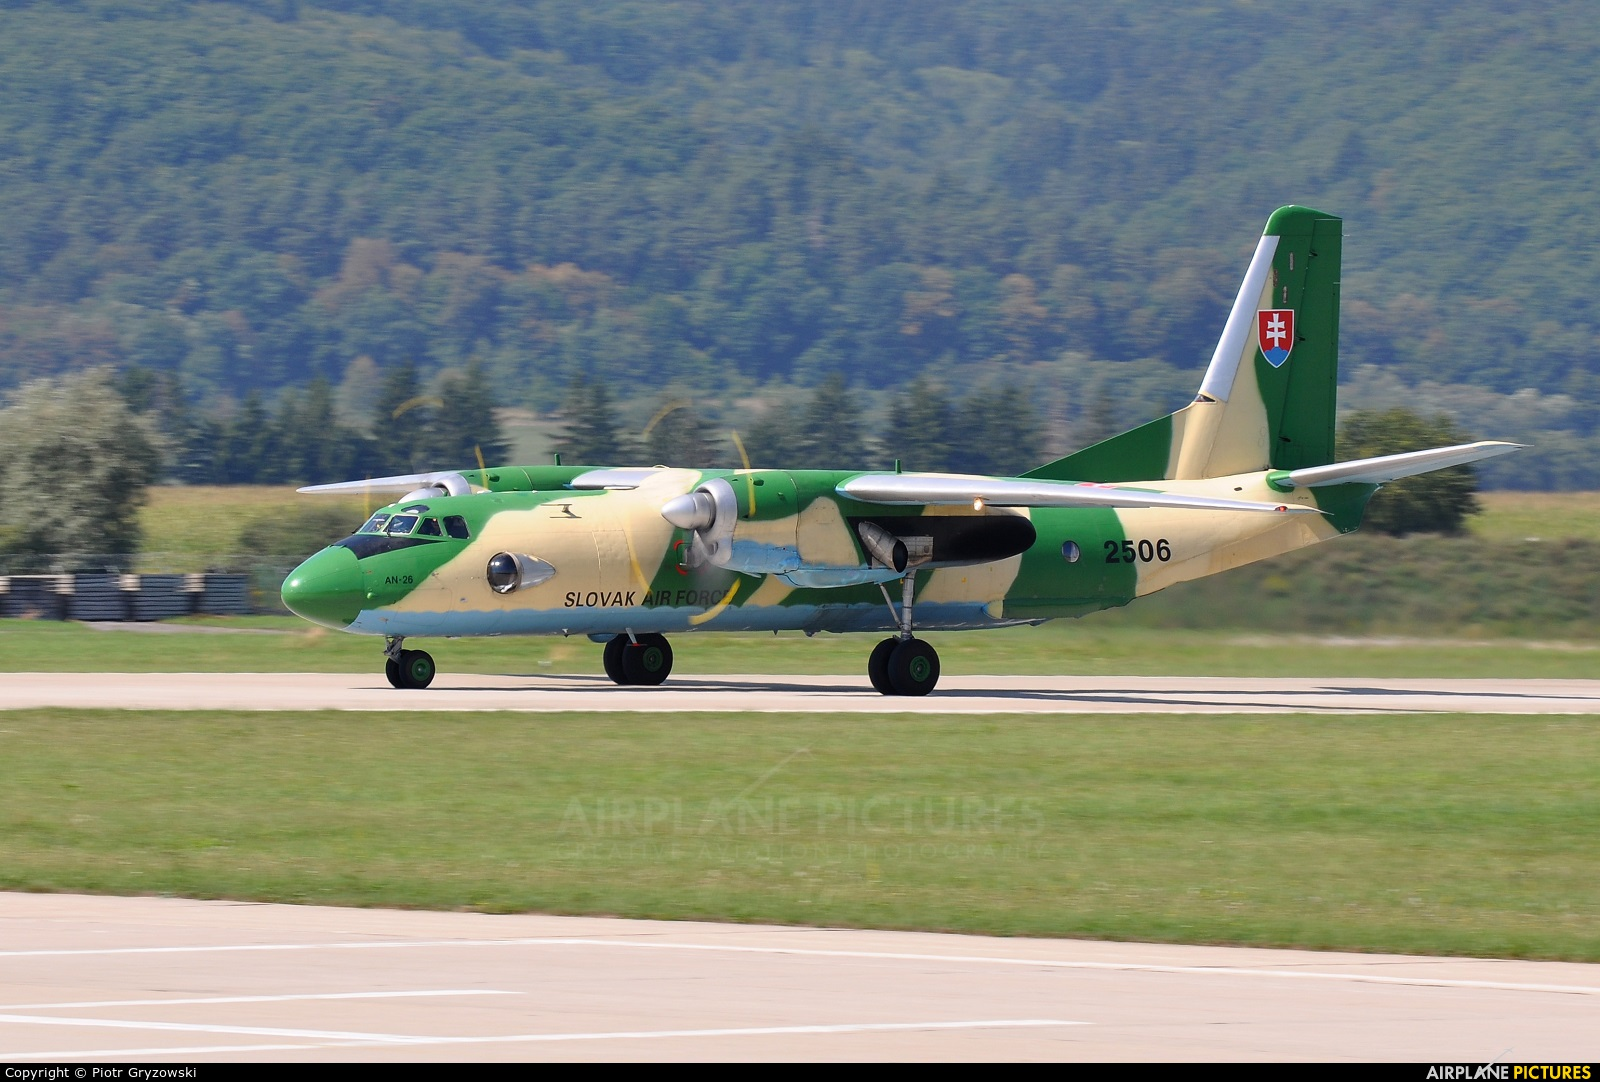 Slovakia -  Air Force 2506 aircraft at Sliač